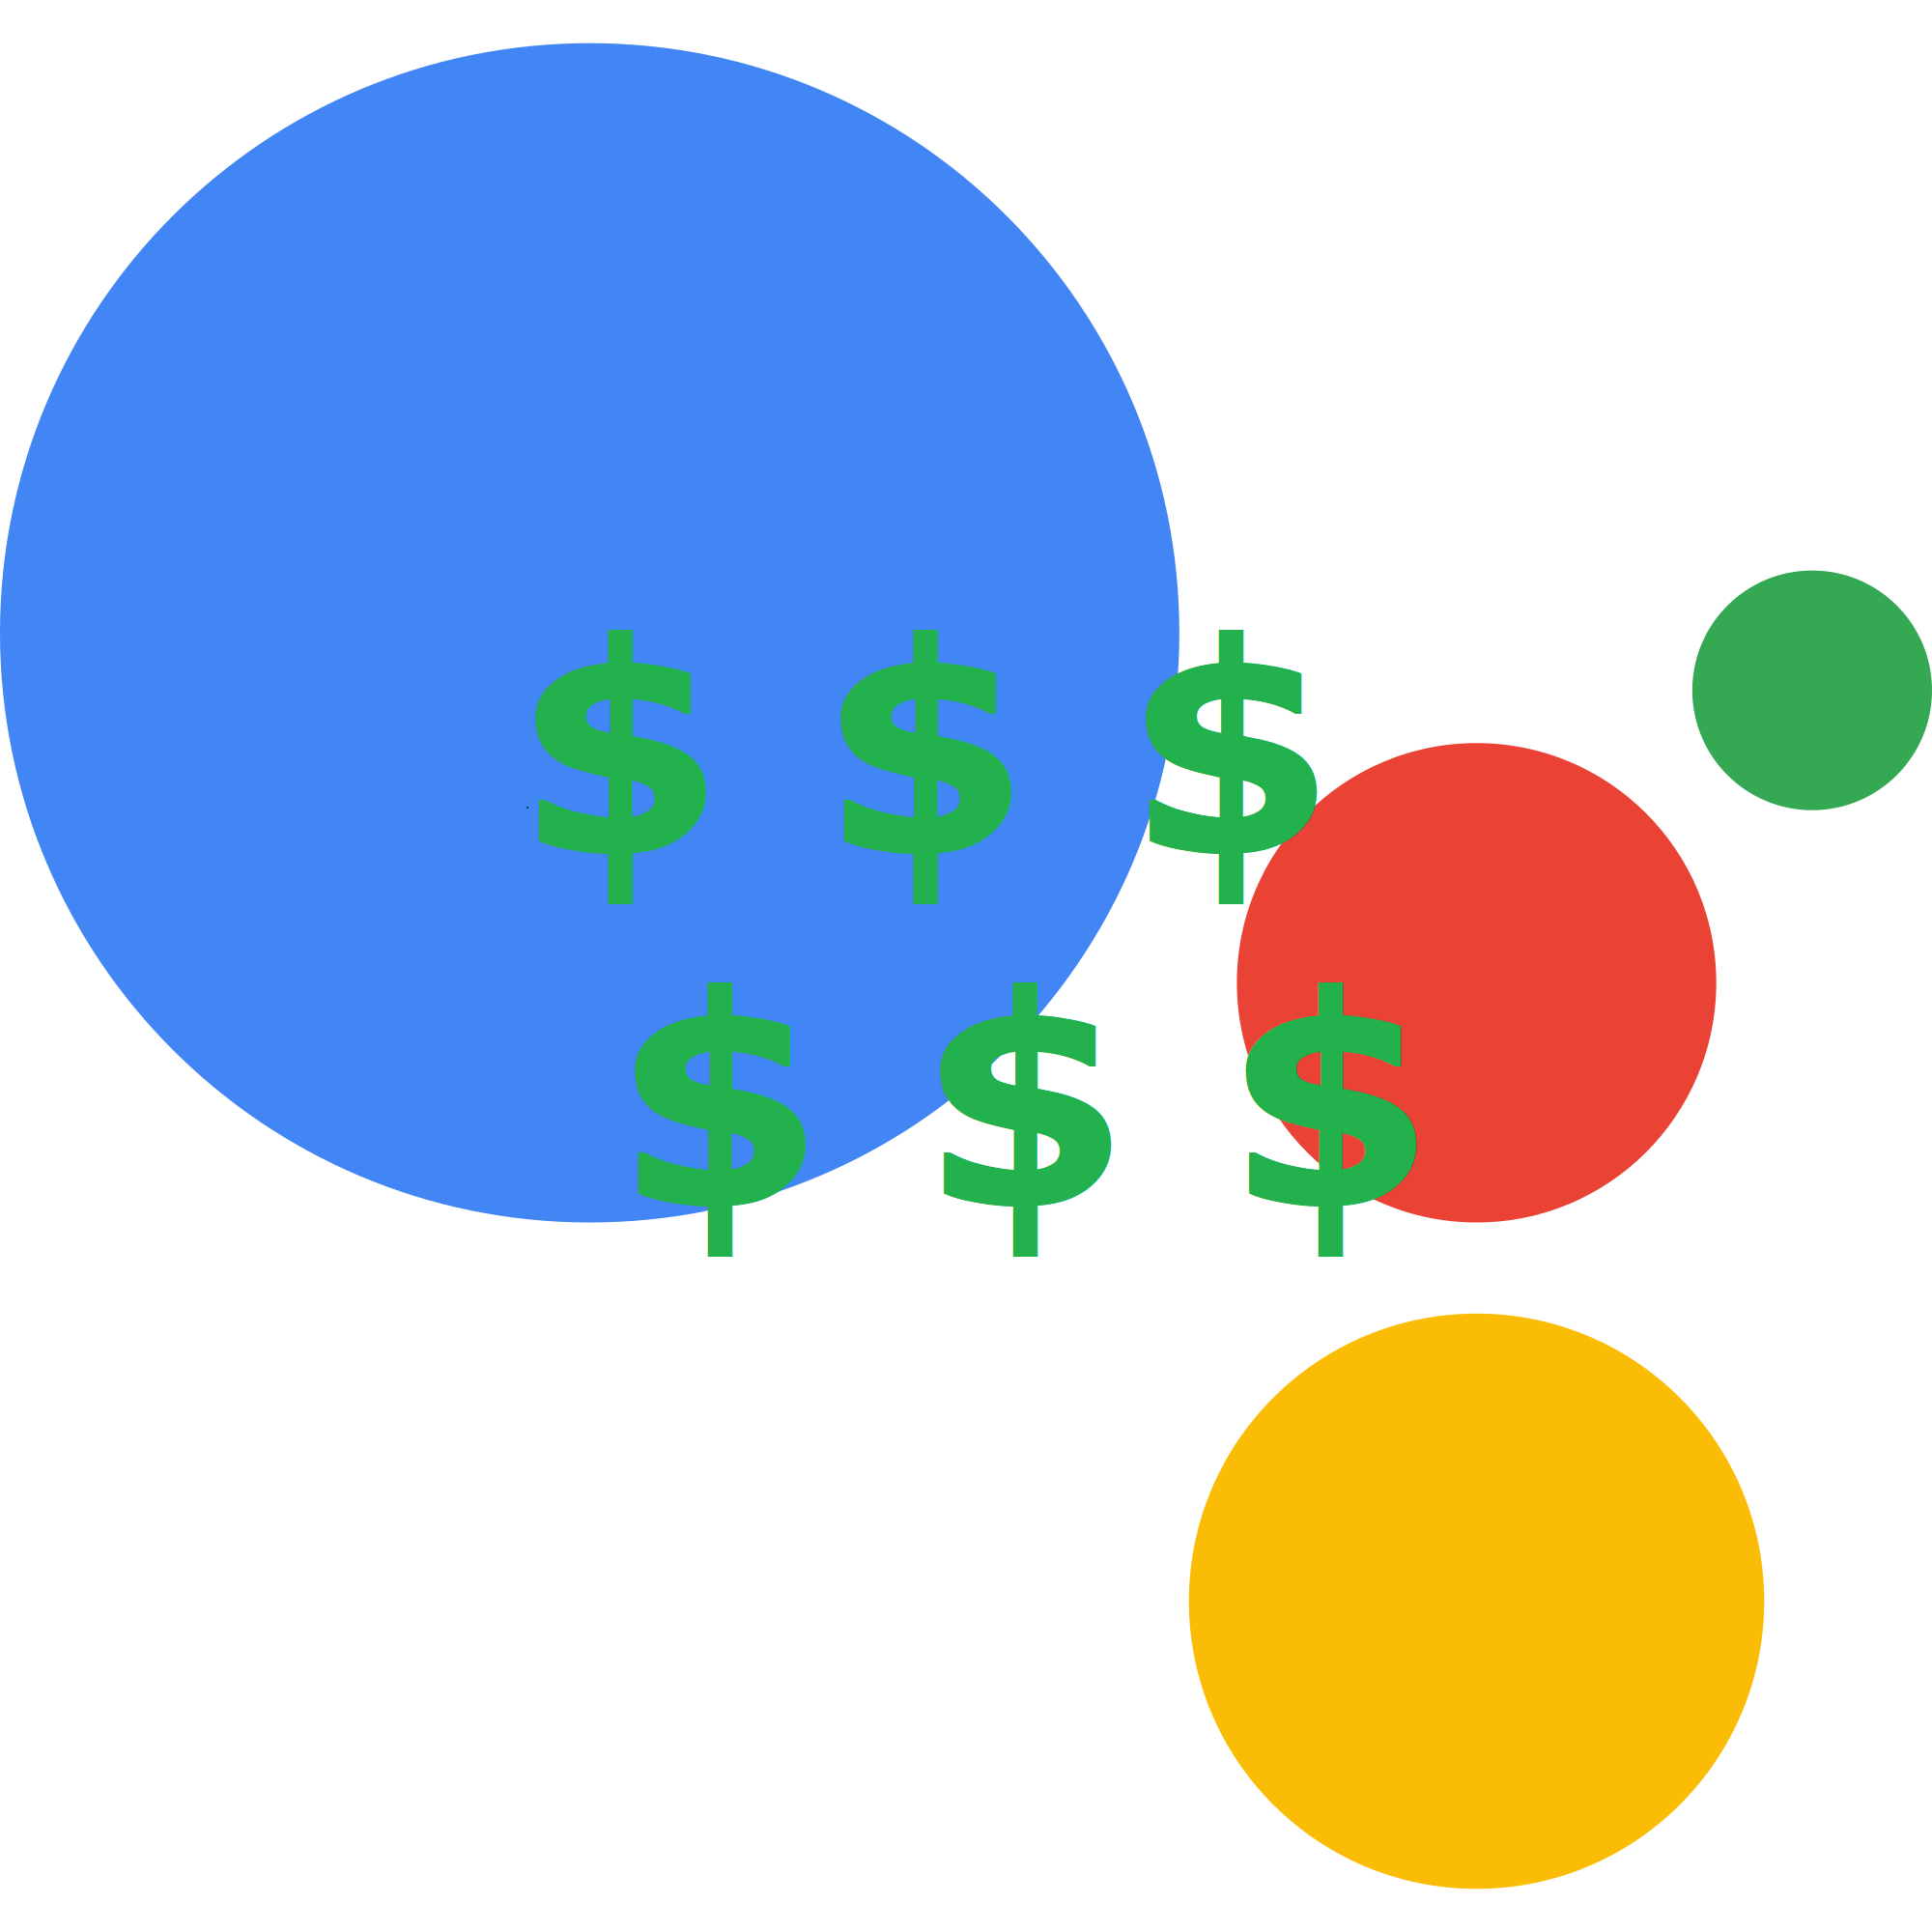 It's Now Possible to Send and Receive Money with the Google